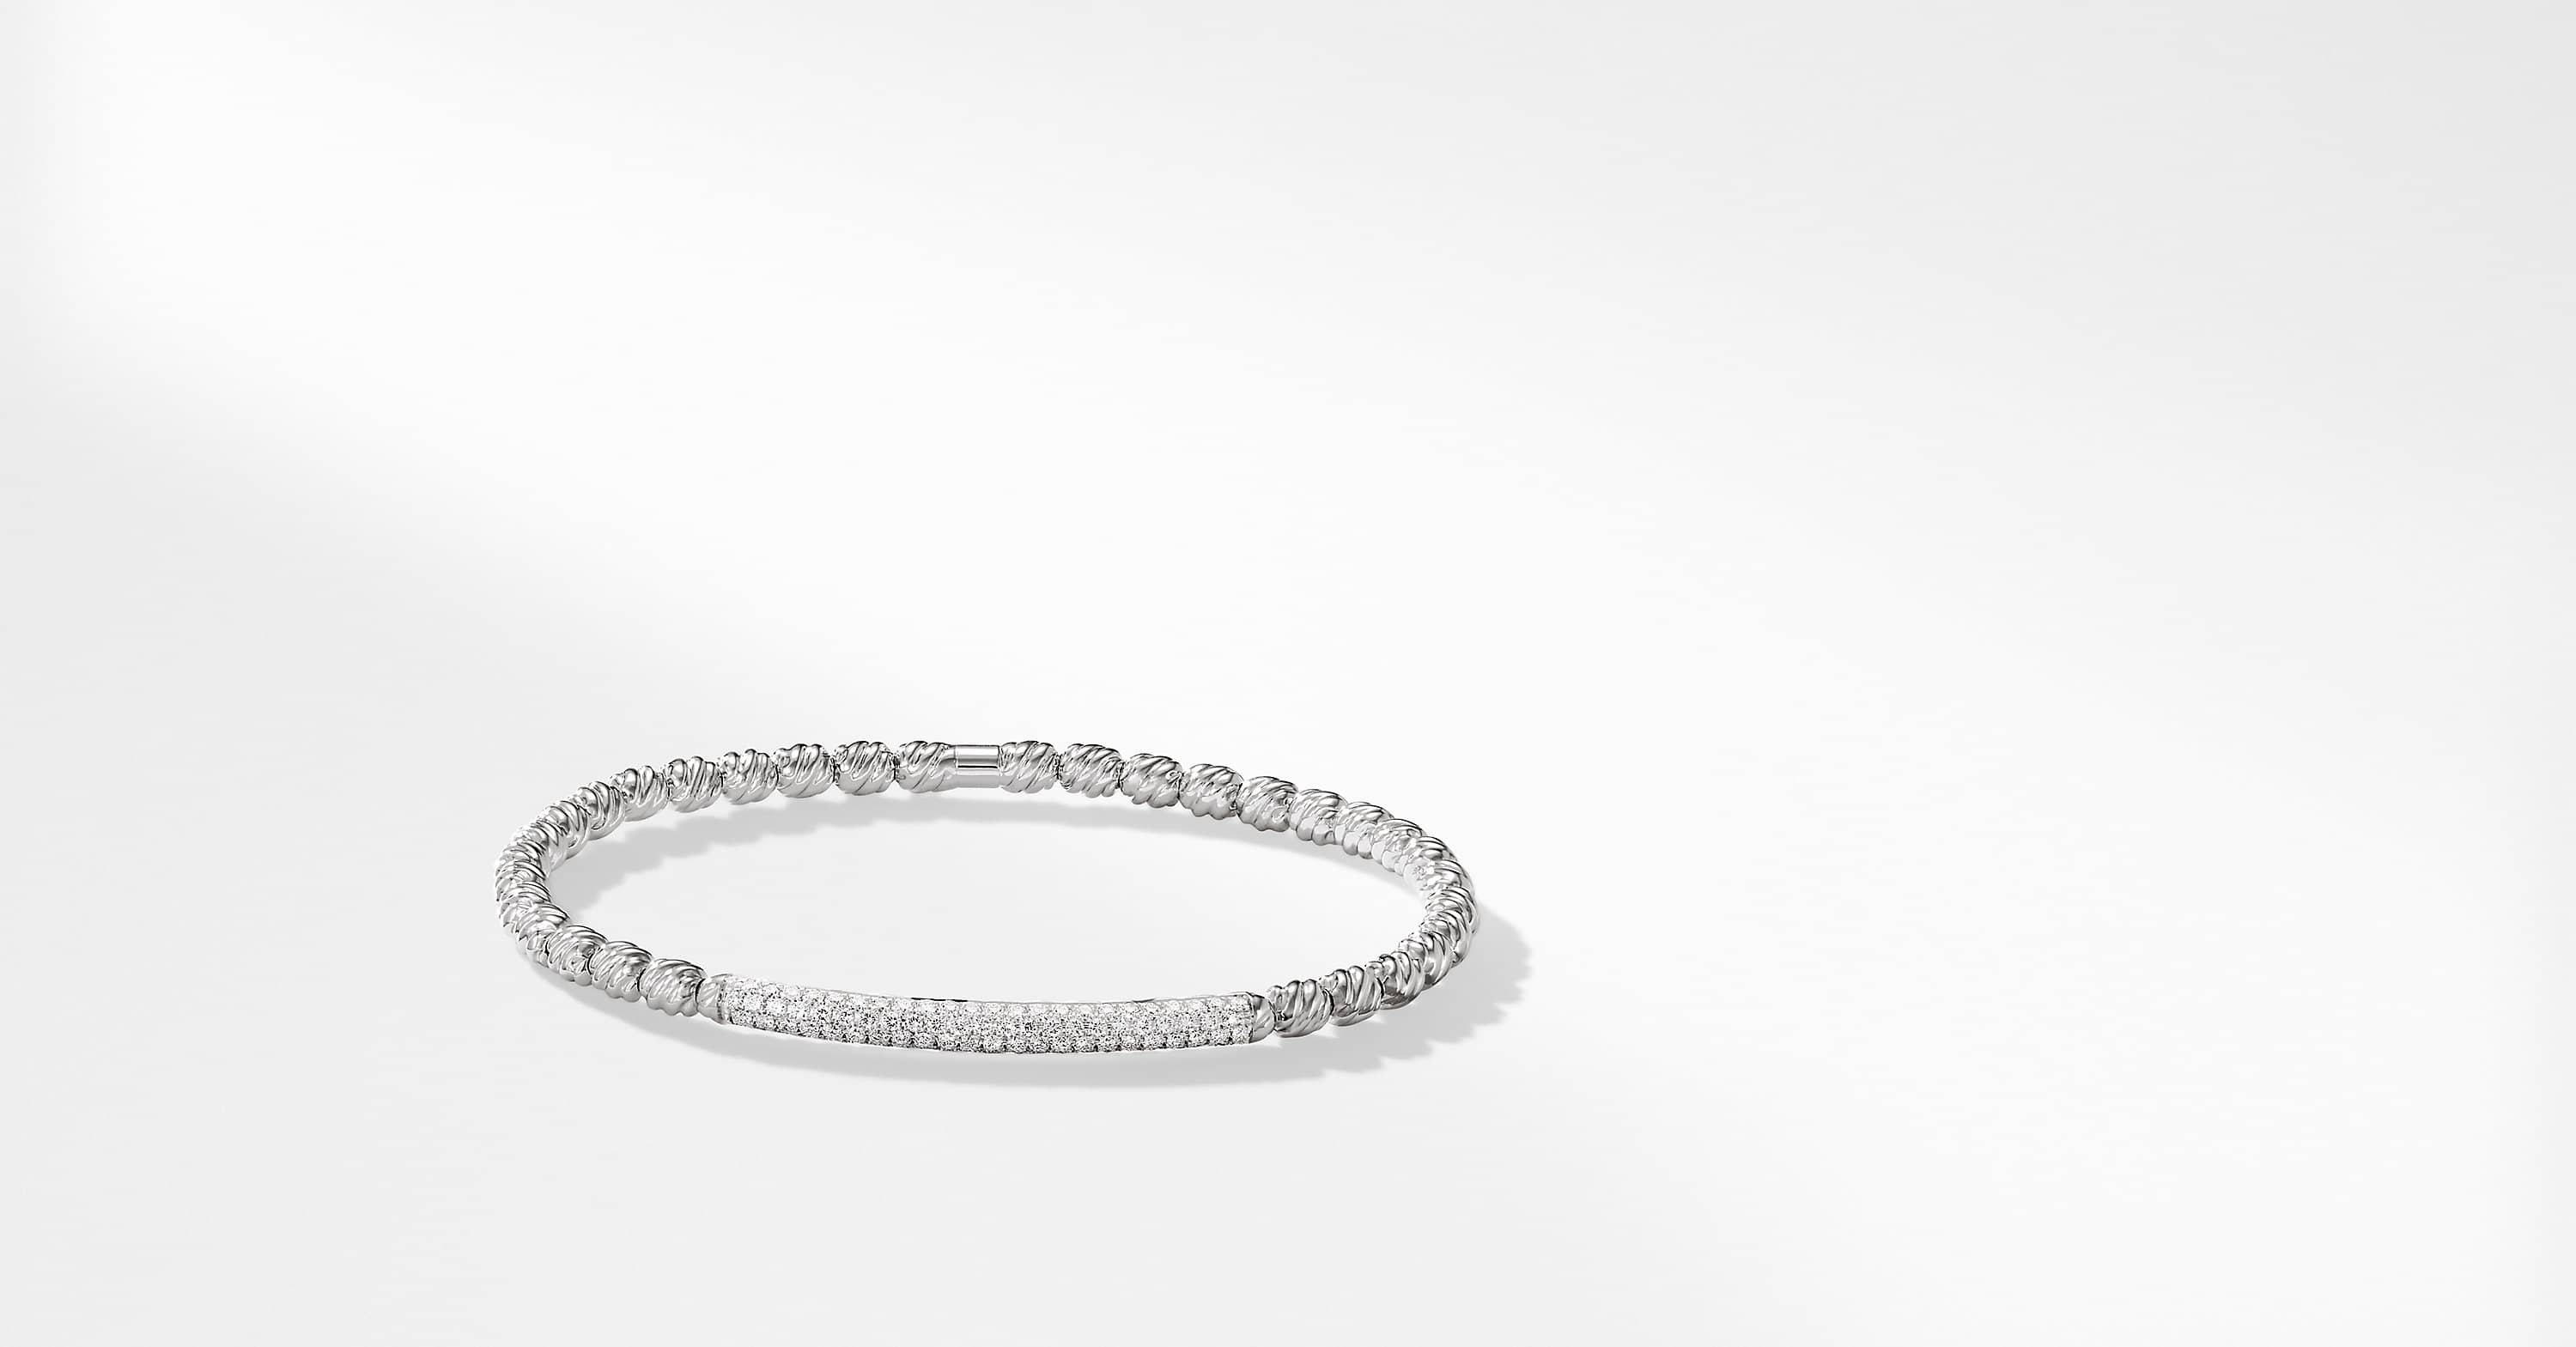 Petite Pave Bracelet with Diamonds in 18K White Gold